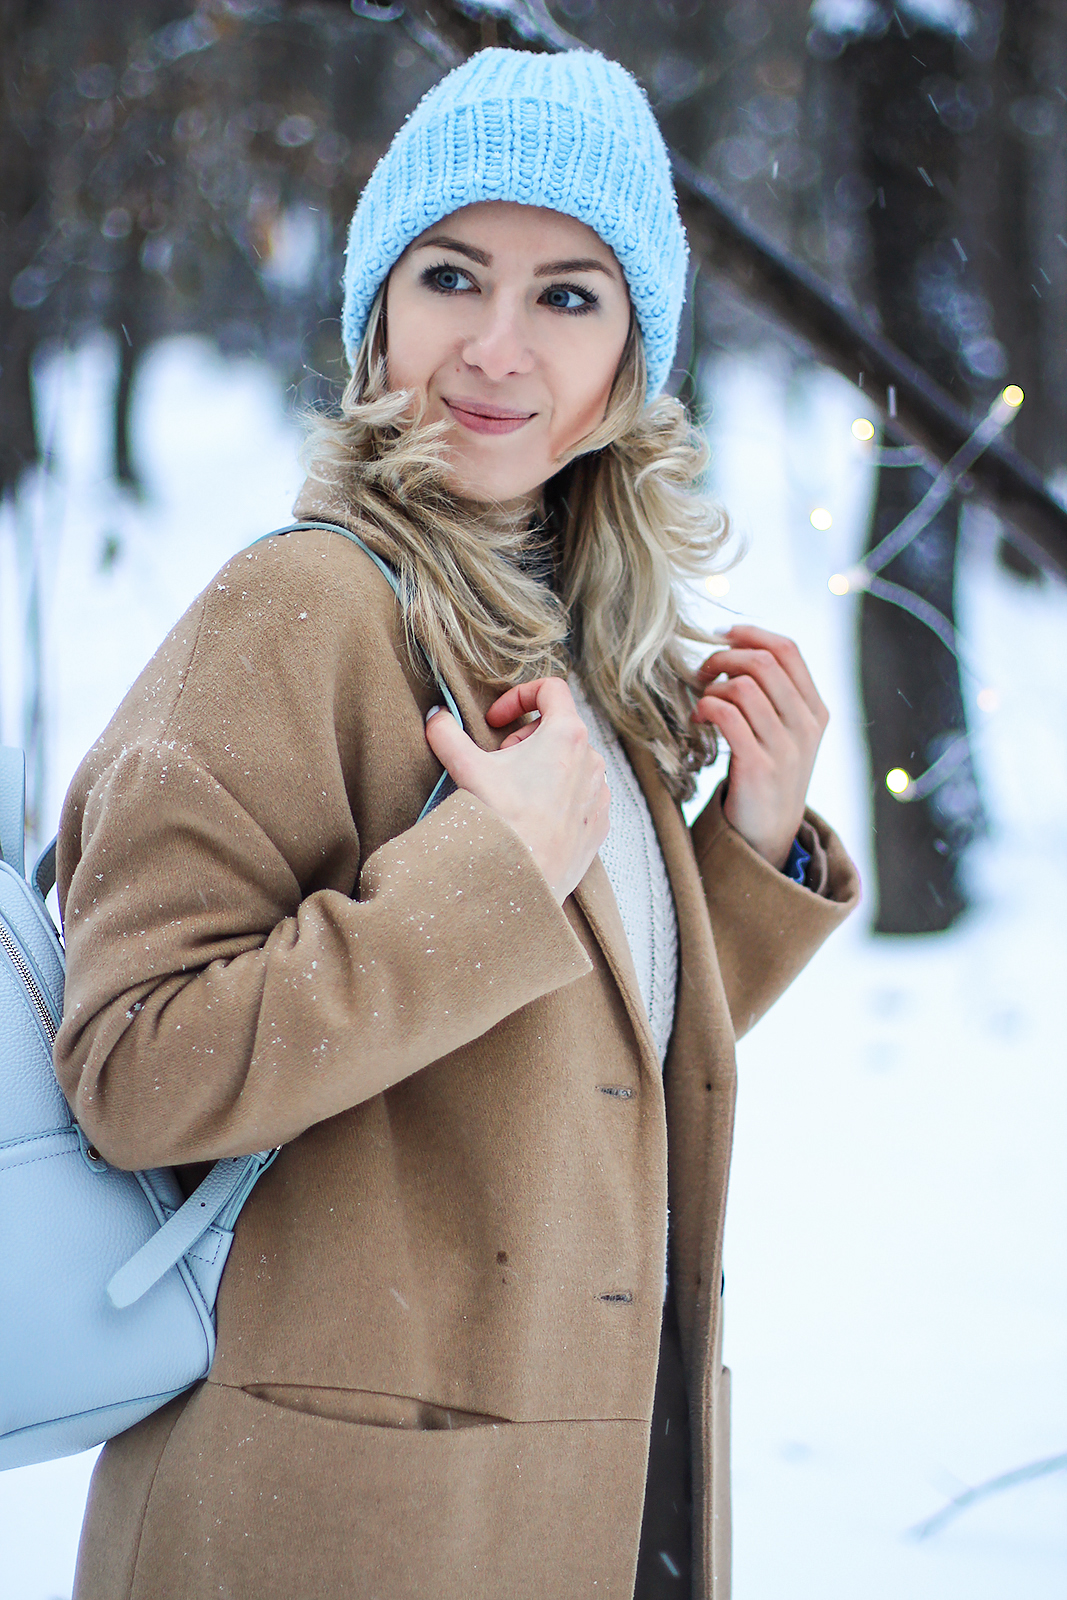 margarita_maslova_winter_look_blue_bini_hat_camel_coat312